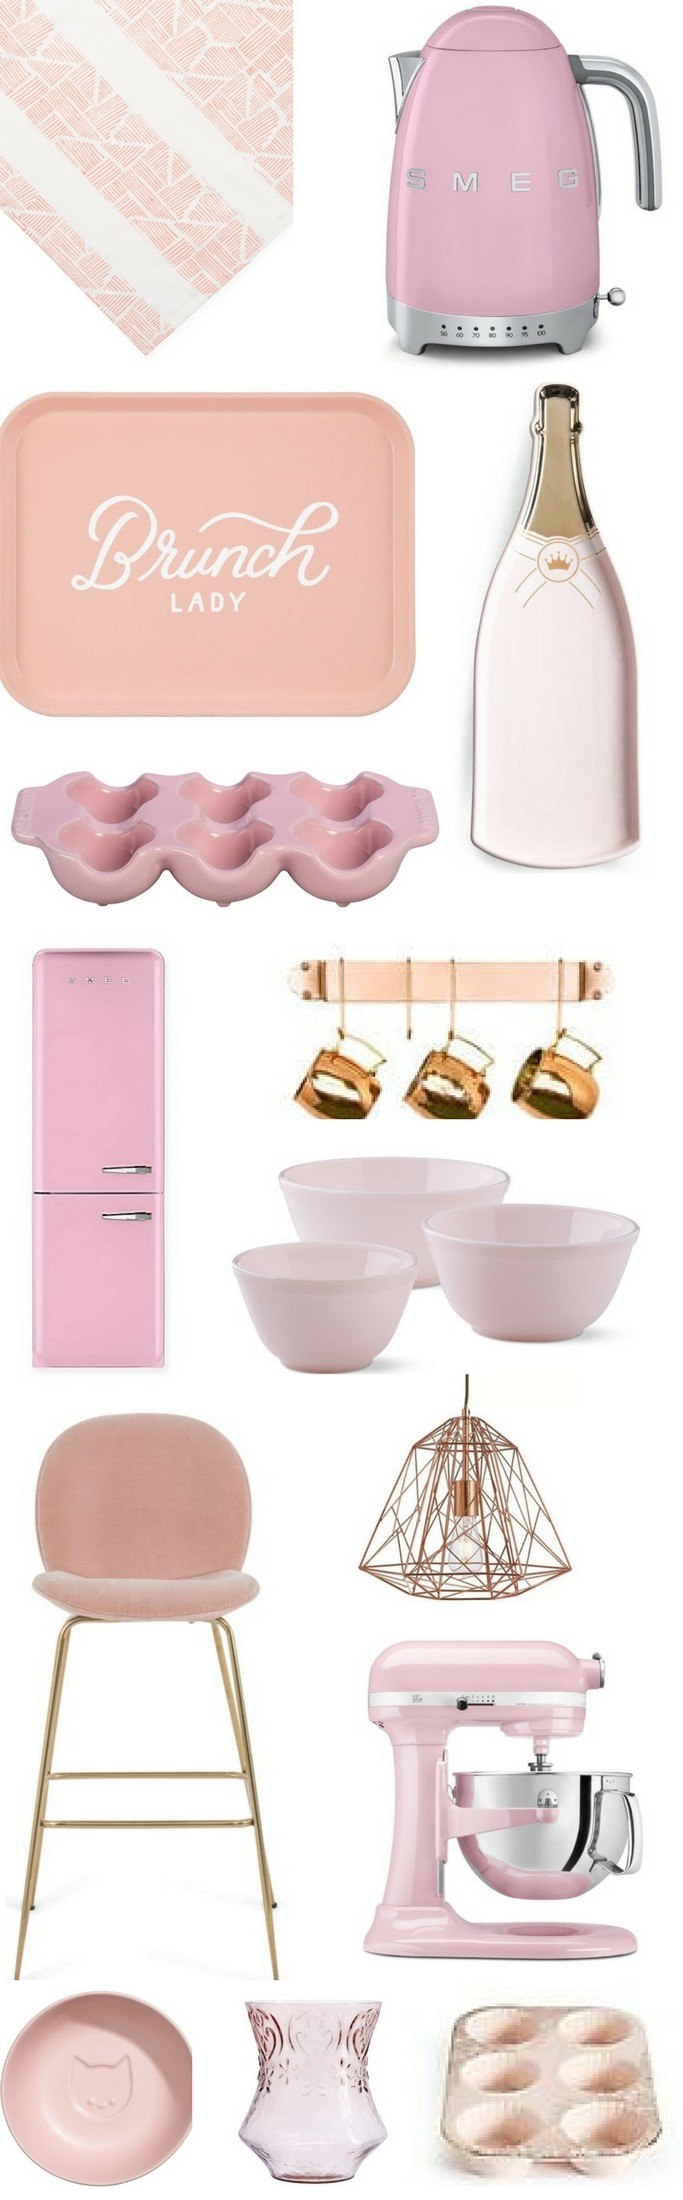 Today I M Rounding Up A Selection Of Swoon Worthy Pink Kitchen Accessories For Anyone Looking To Hop On The Train With Me